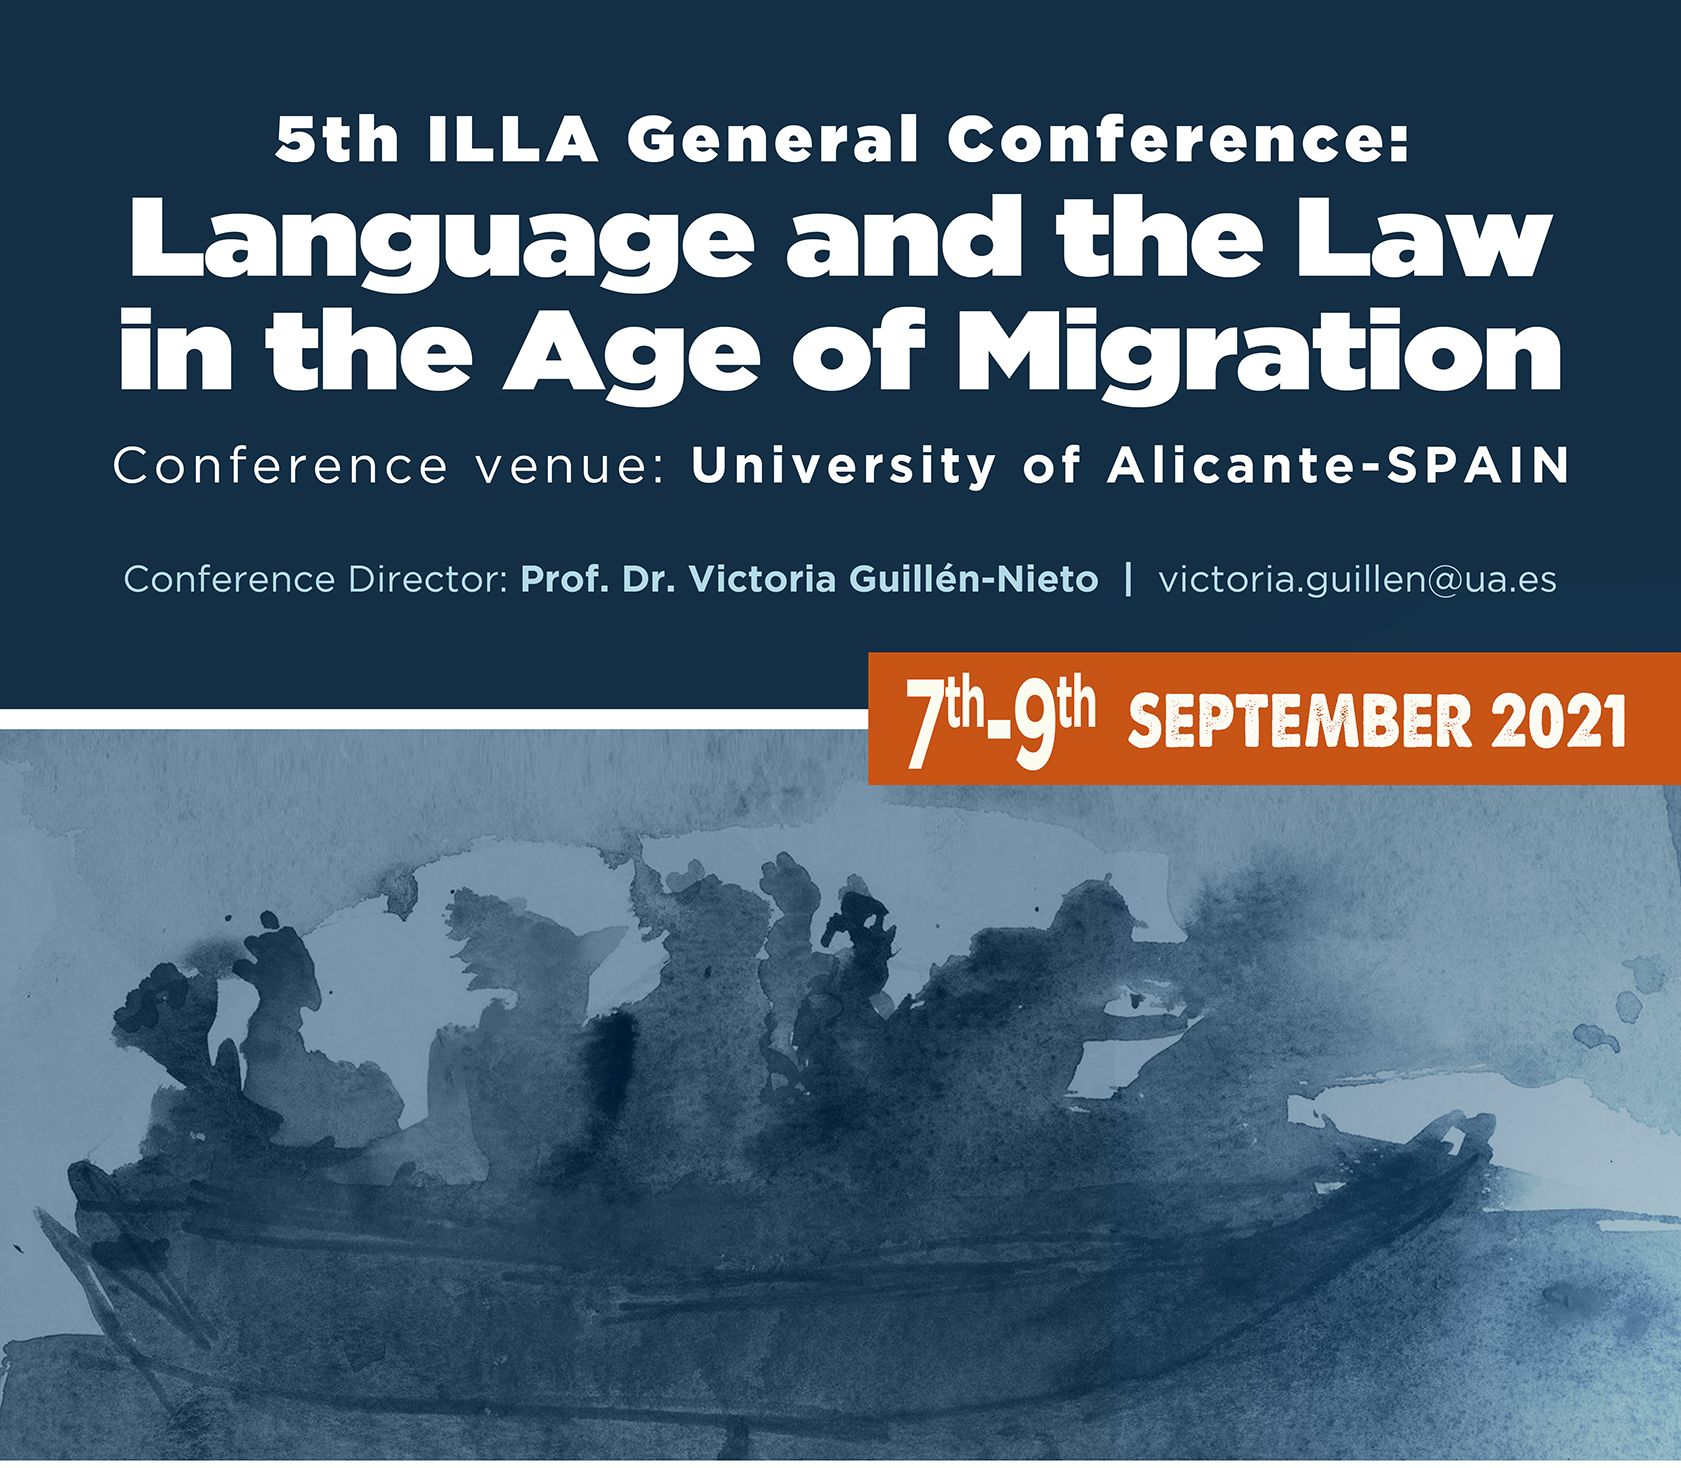 5th ILLA General Conference: Language and the Law in the Age of Migration